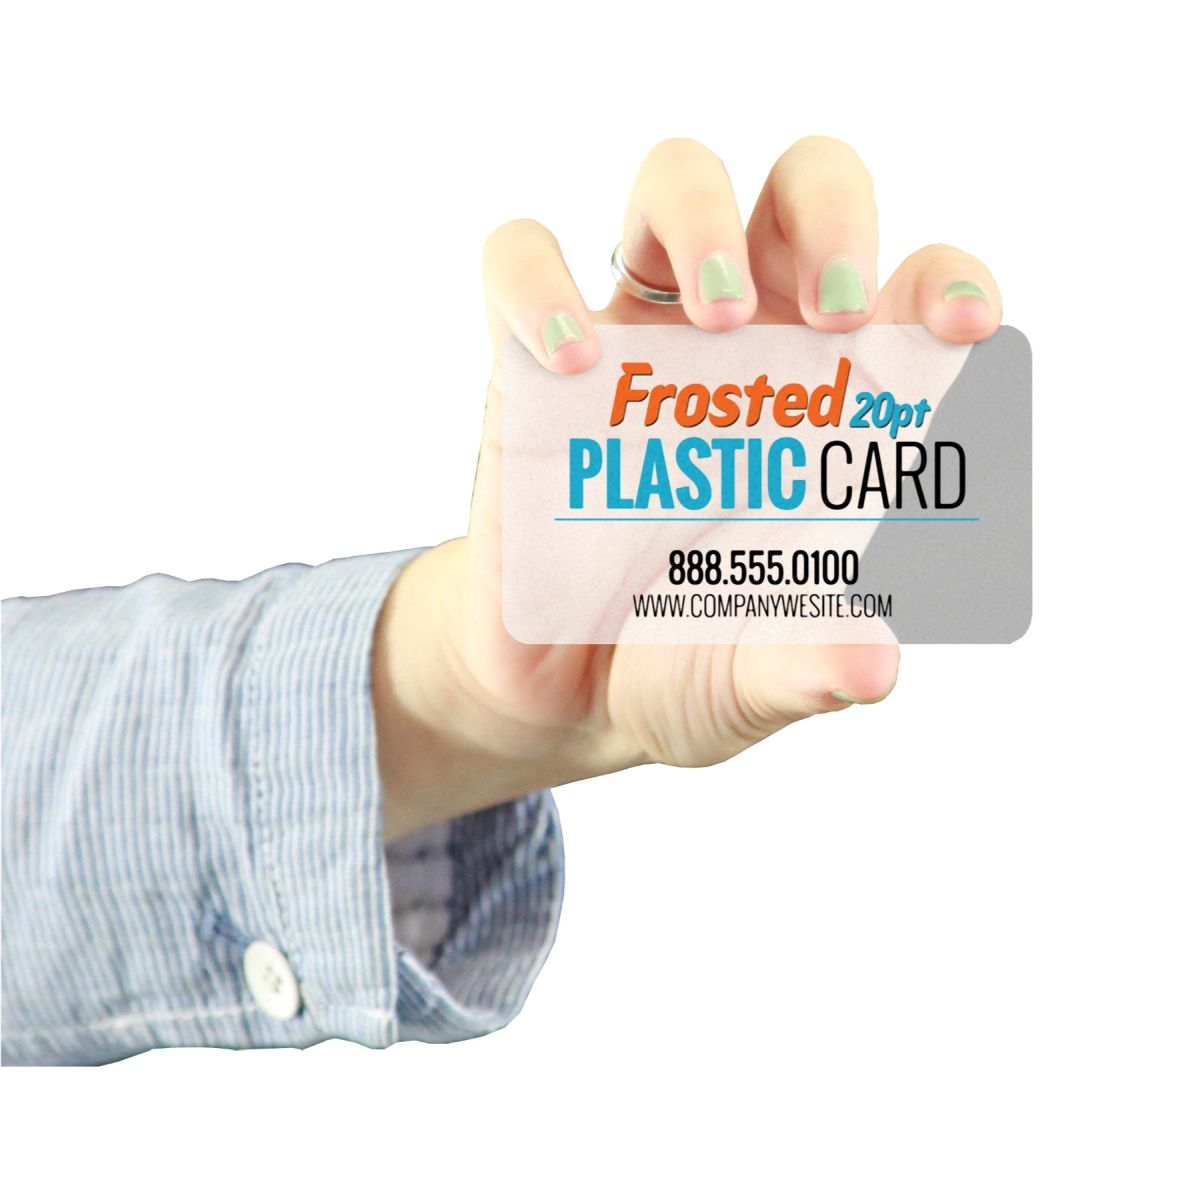 Frosted plastic business cards qualita print colourmoves